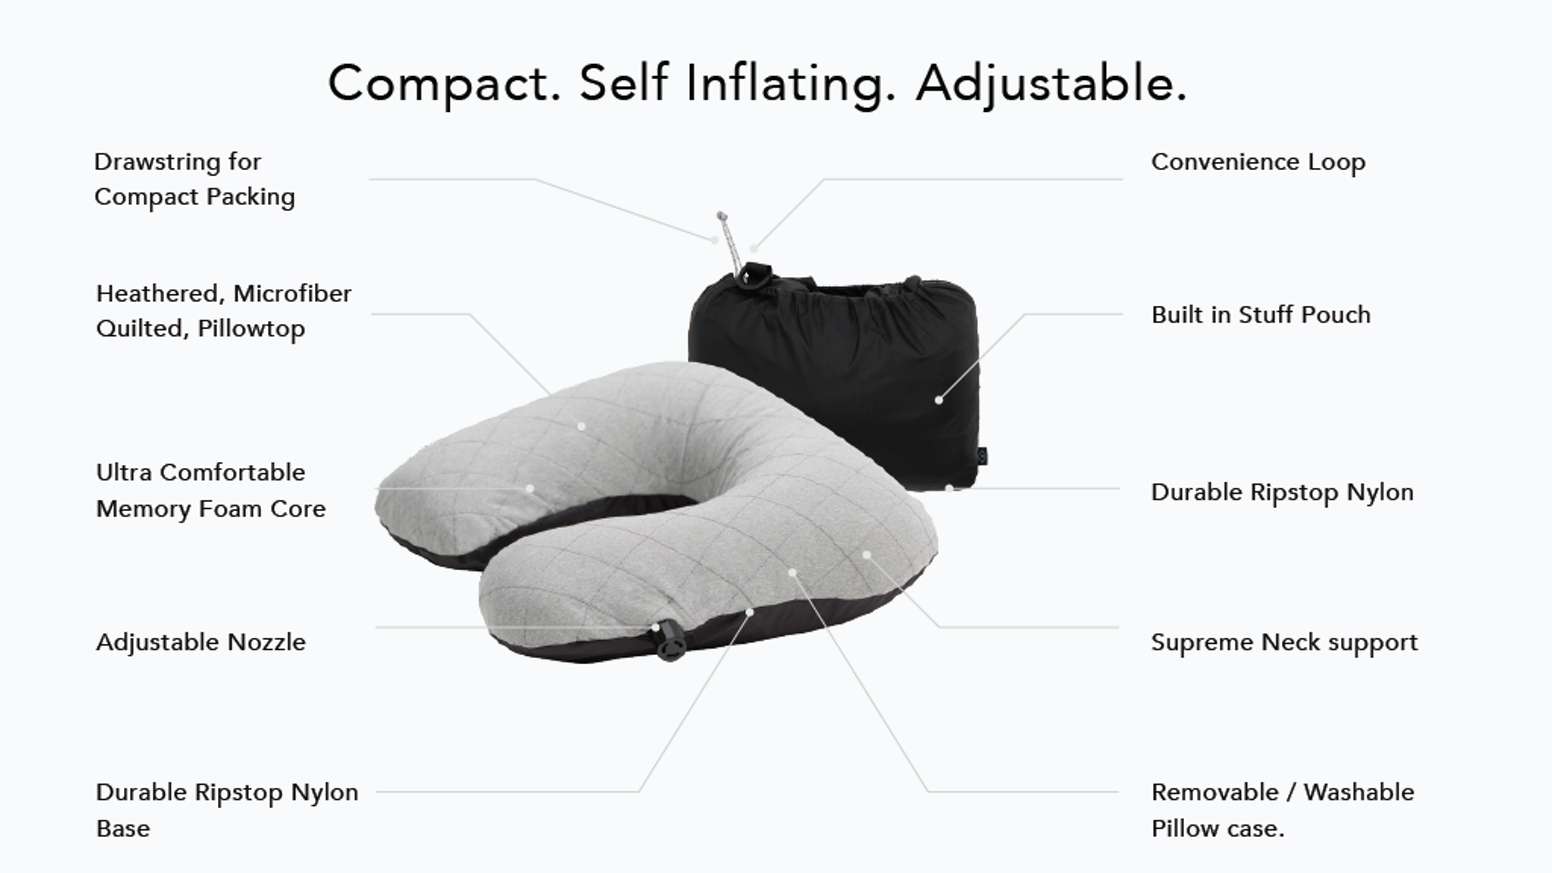 The buy-for-life, ultra comfortable, memory foam travel pillow that inflates itself and packs up smaller than your rain jacket.